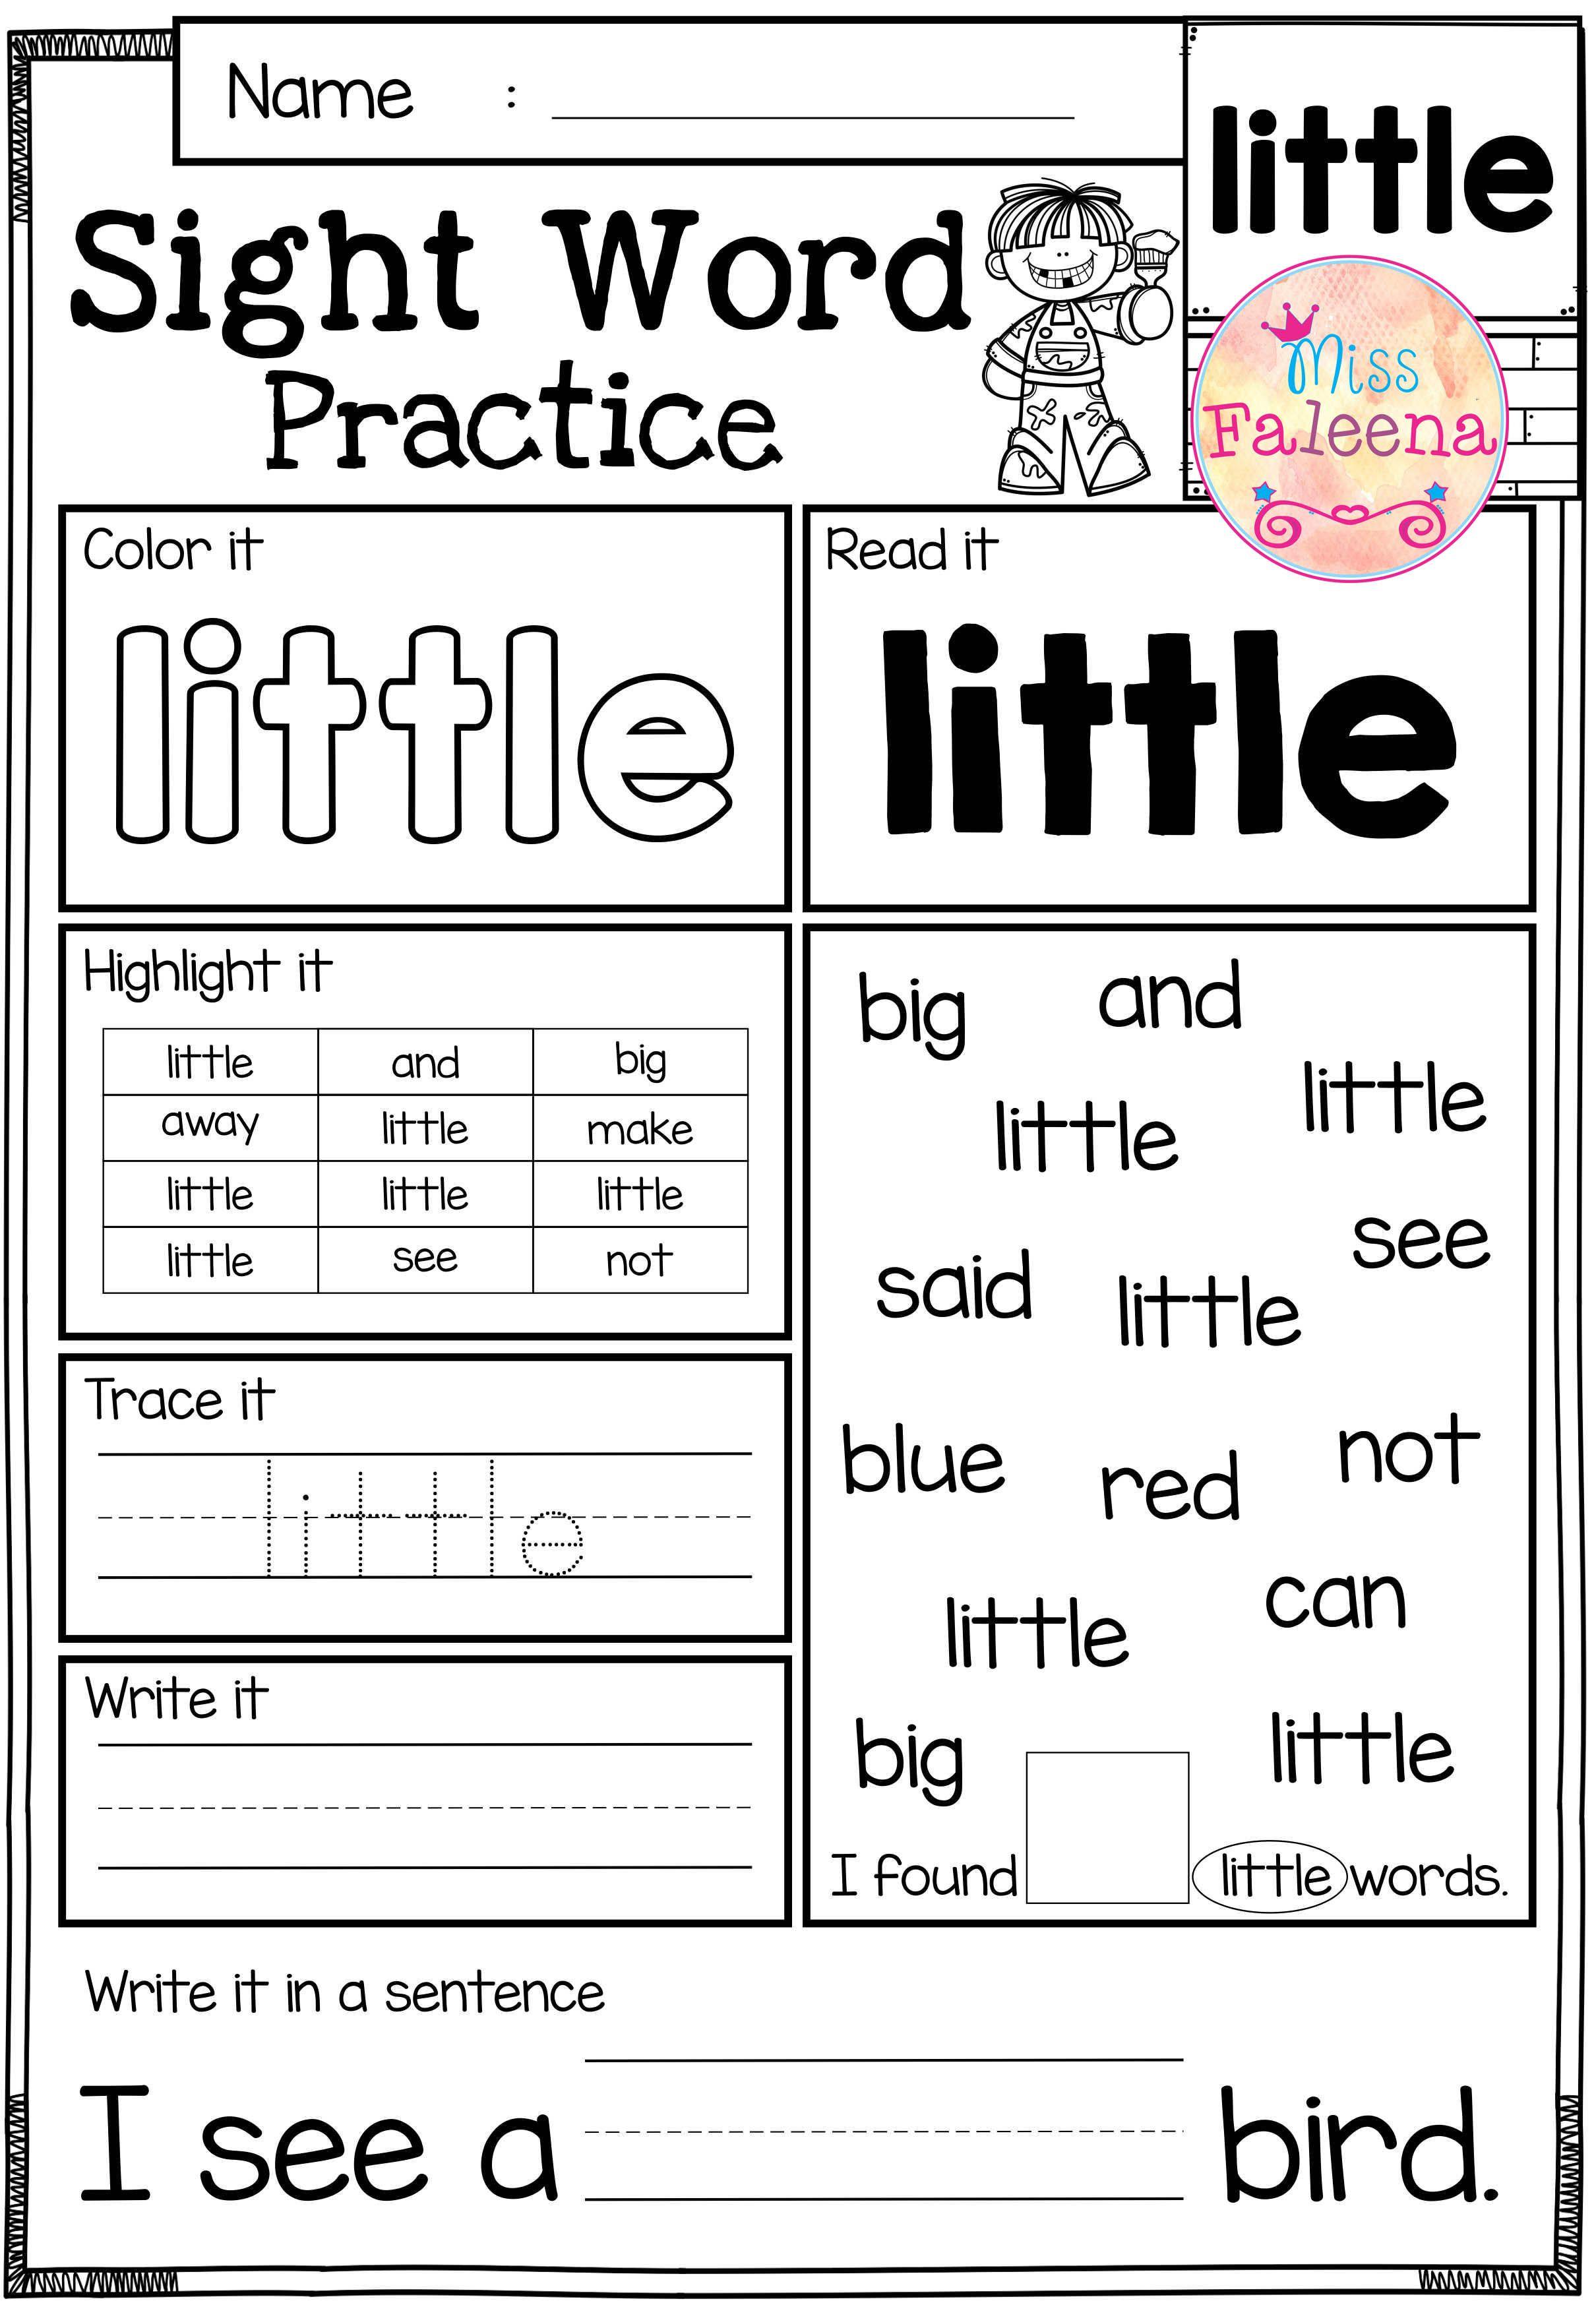 Sight Word Practice Pre Primer With Images Word Practice